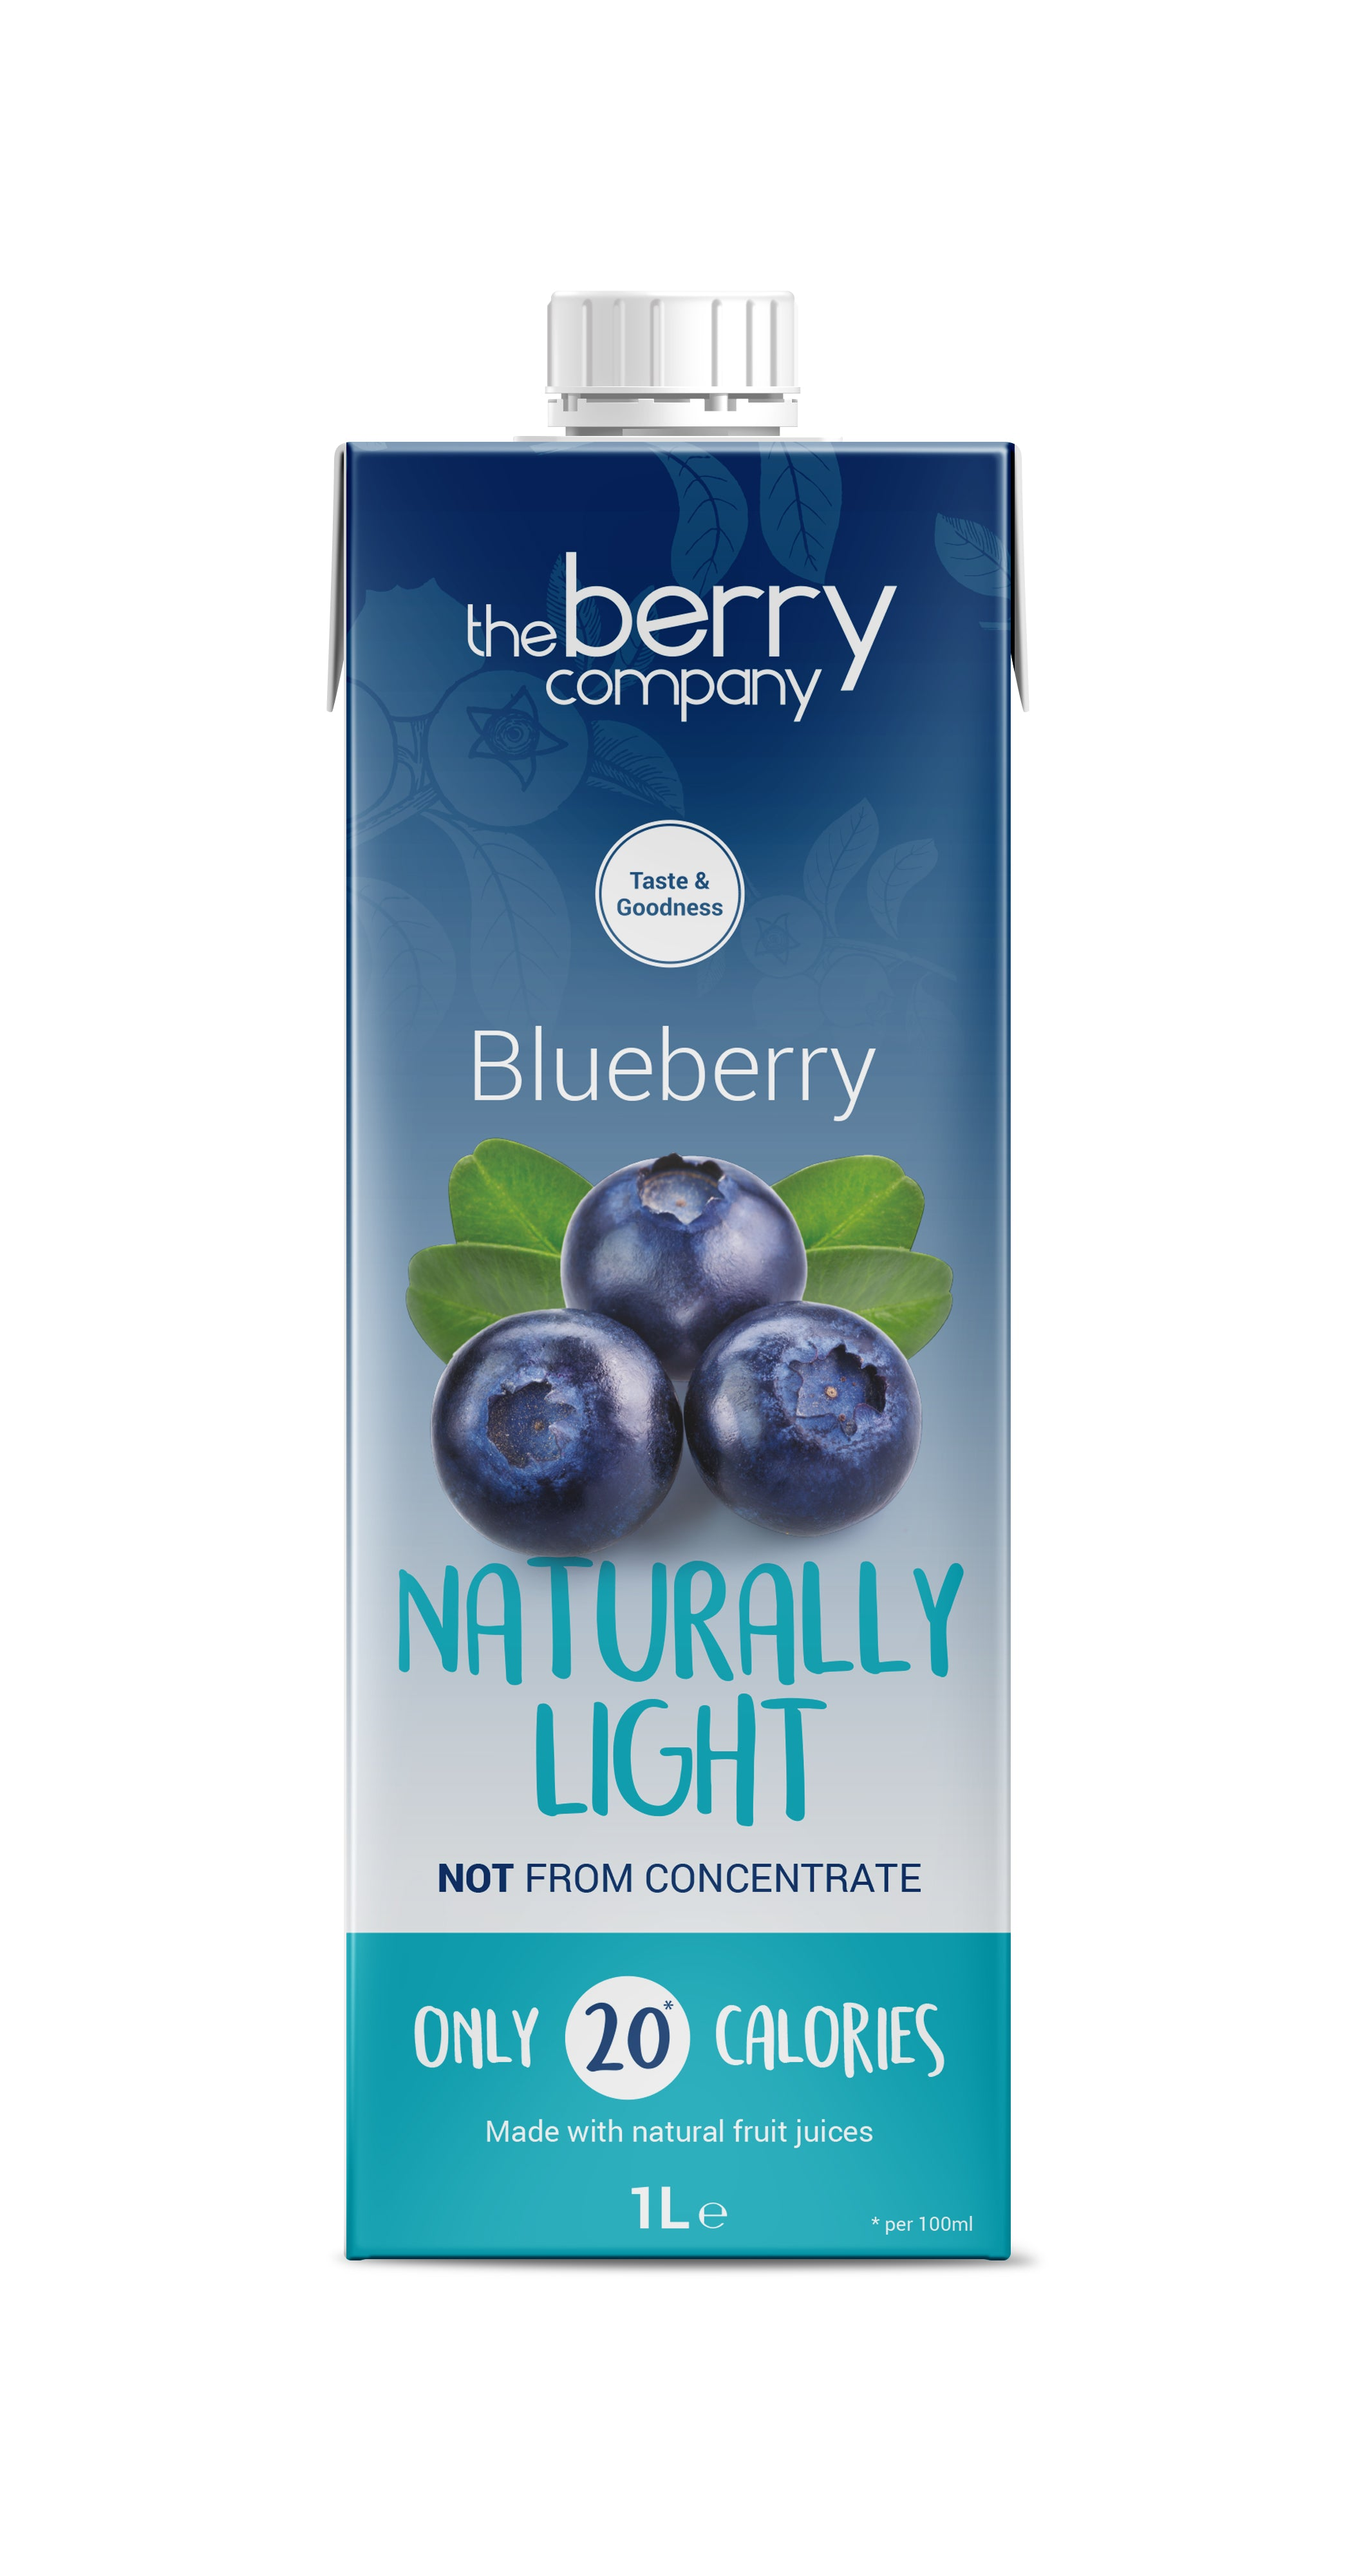 The Berry Company Blueberry Naturally Light 1L